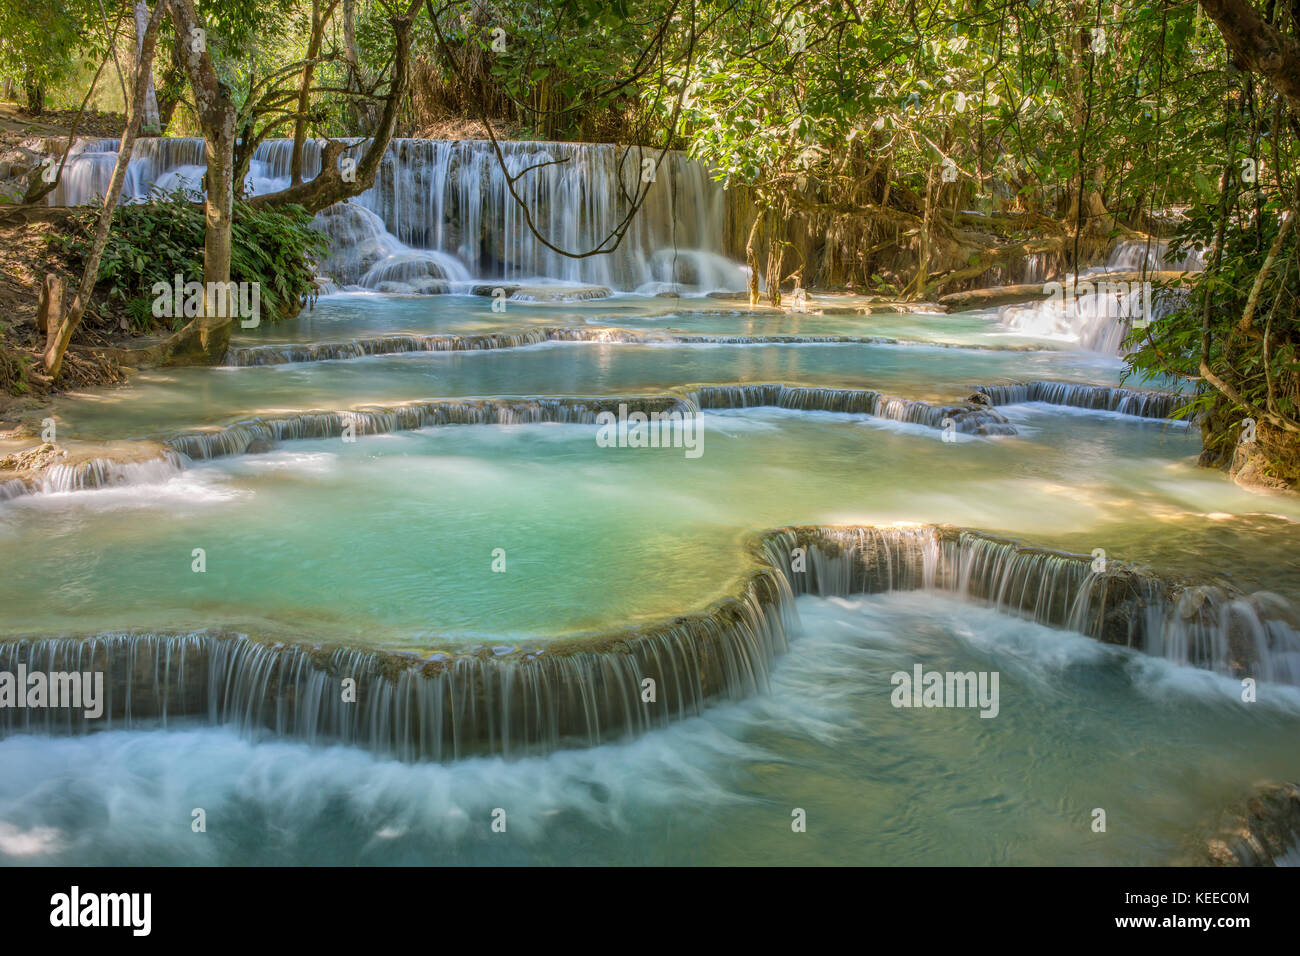 Cascades de Kuang Si, Luang phrabang, Laos. Photo Stock